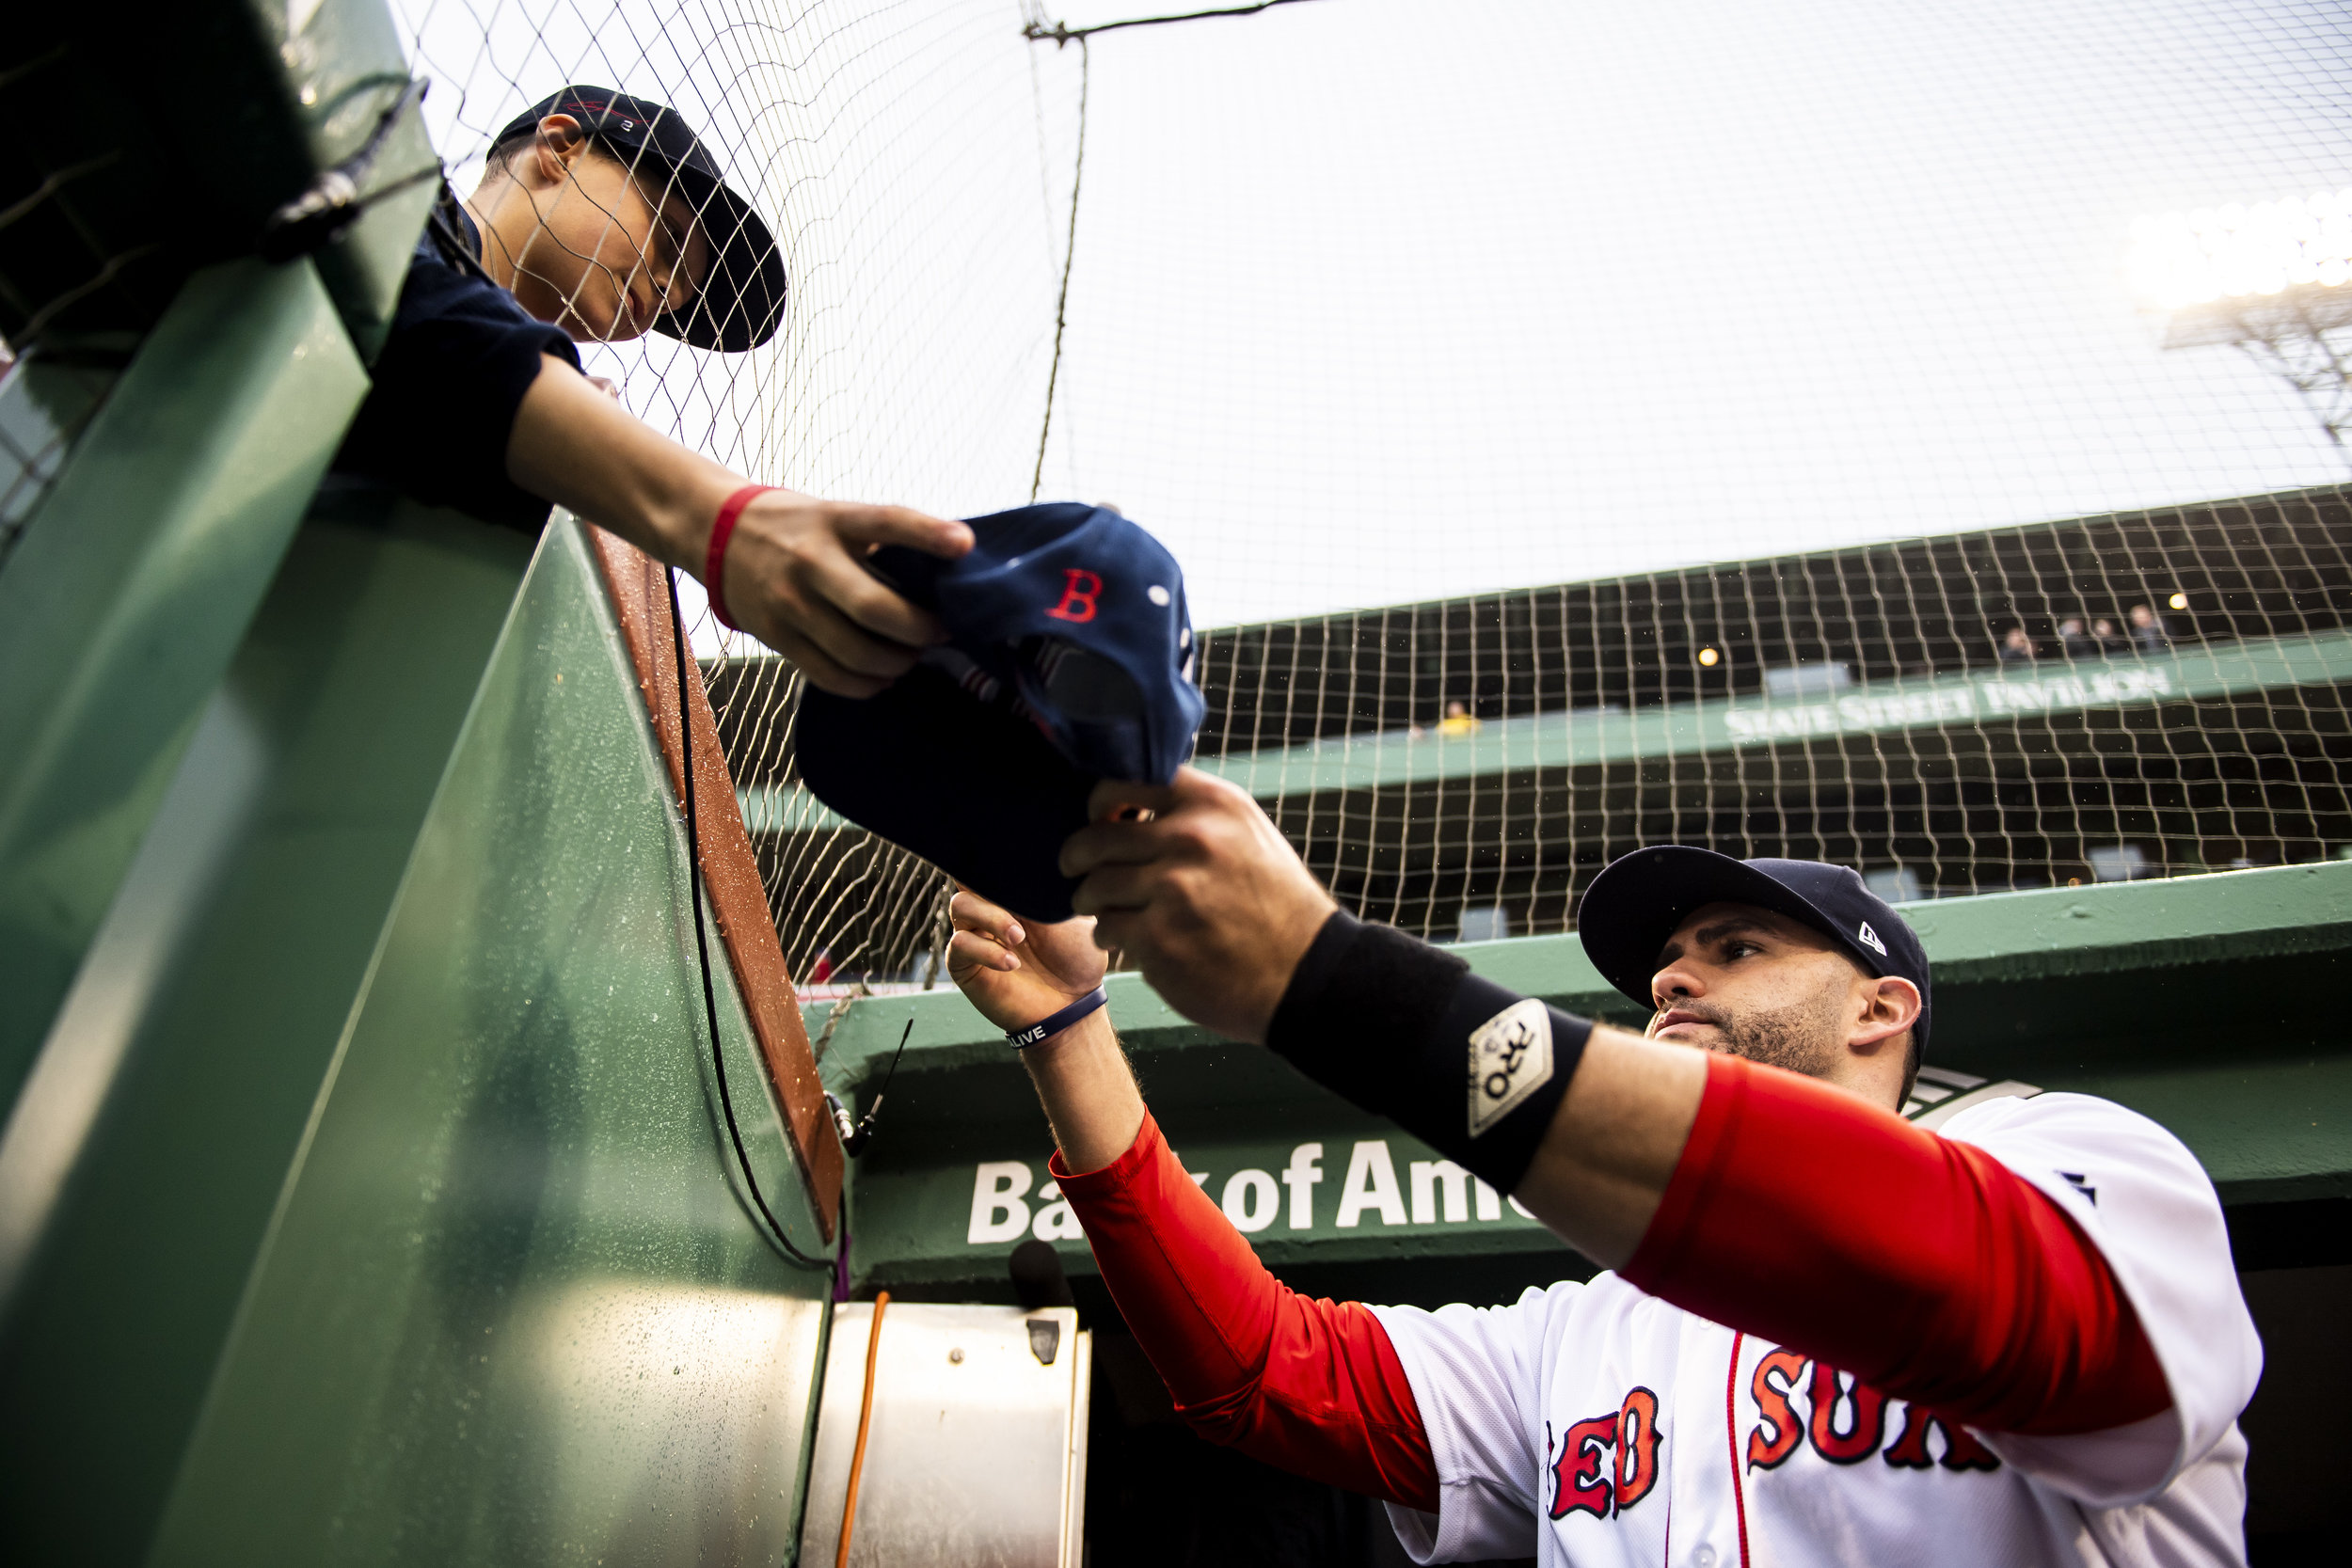 May 19, 2018, Boston, MA: Boston Red Sox left fielder J.D. Martinez signs autographs for fans before the Boston Red Sox face the Baltimore Orioles at Fenway Park in Boston, Massachusetts on Saturday, May 19, 2018. (Photo by Matthew Thomas/Boston Red Sox)